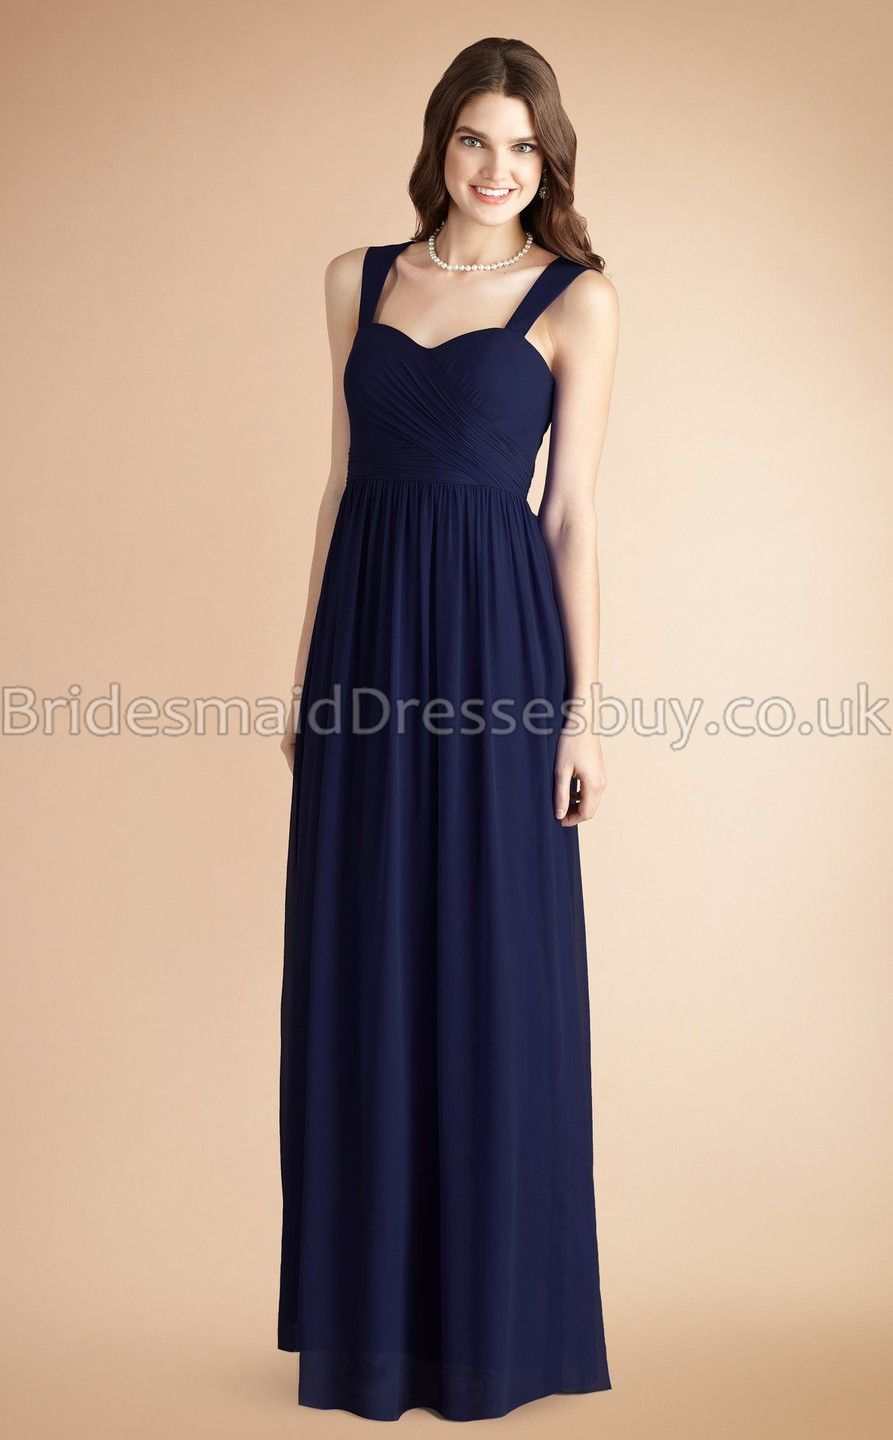 long chiffon bridesmaid dresses with straps | Gommap Blog